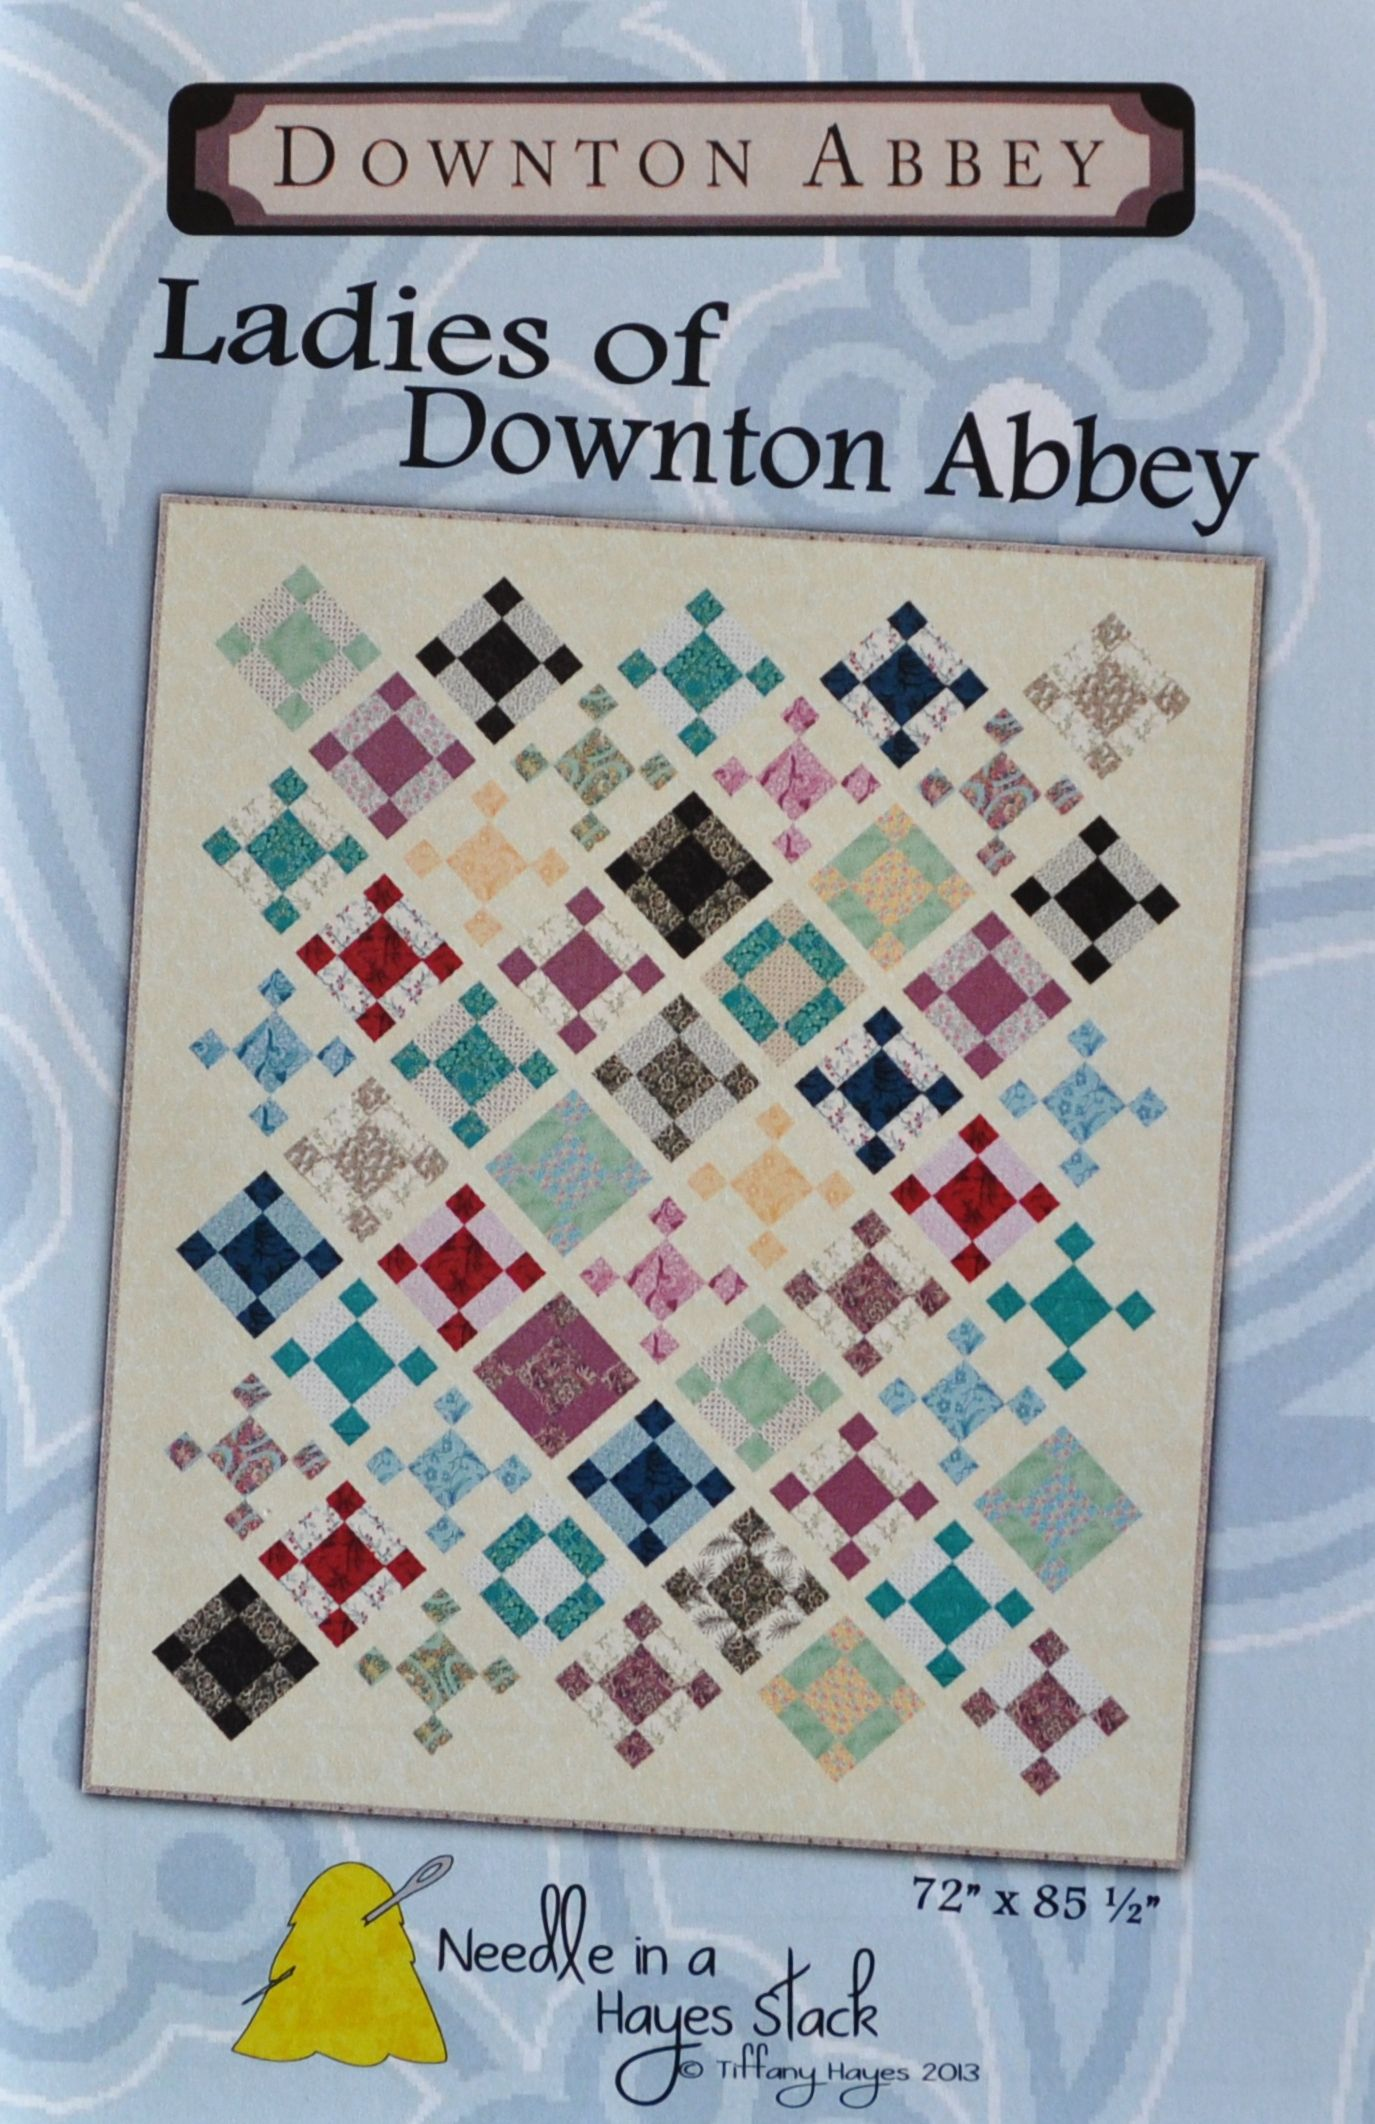 NEW Downton Abbey Quilt pattern - Ladies of Downton Abbey ... : downton abbey quilt kits - Adamdwight.com